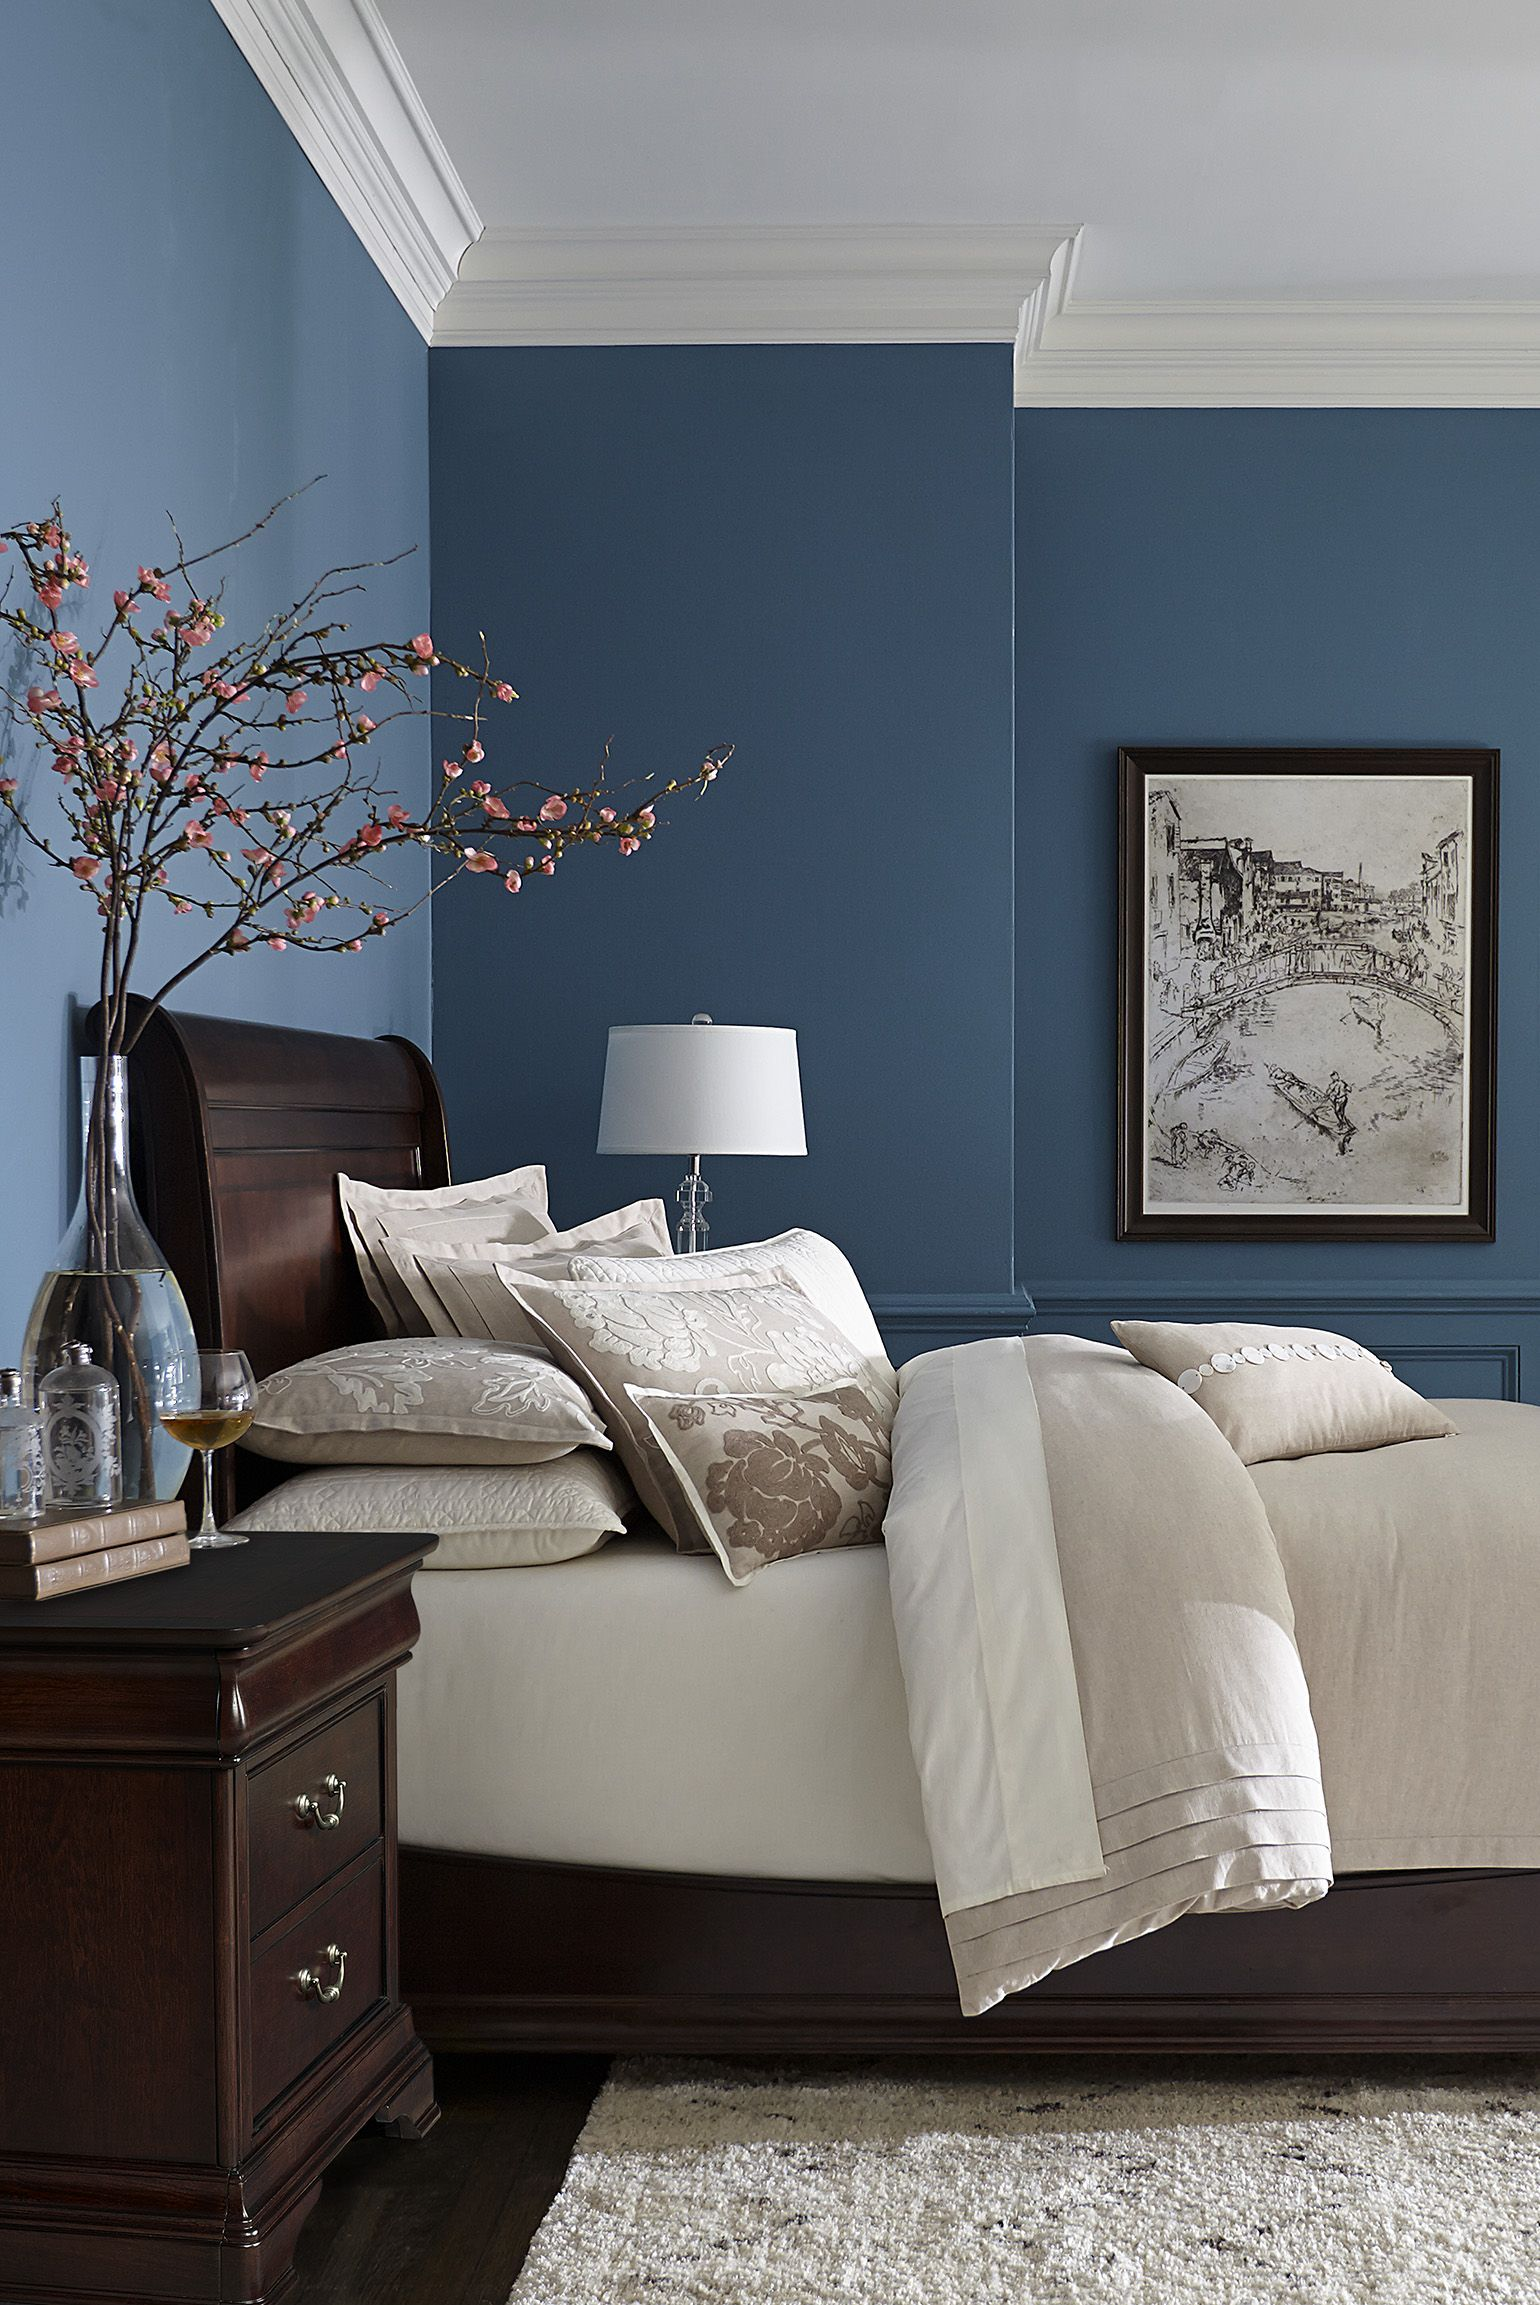 99+ Best Bedroom Paint Color Design Ideas for Inspiration ...